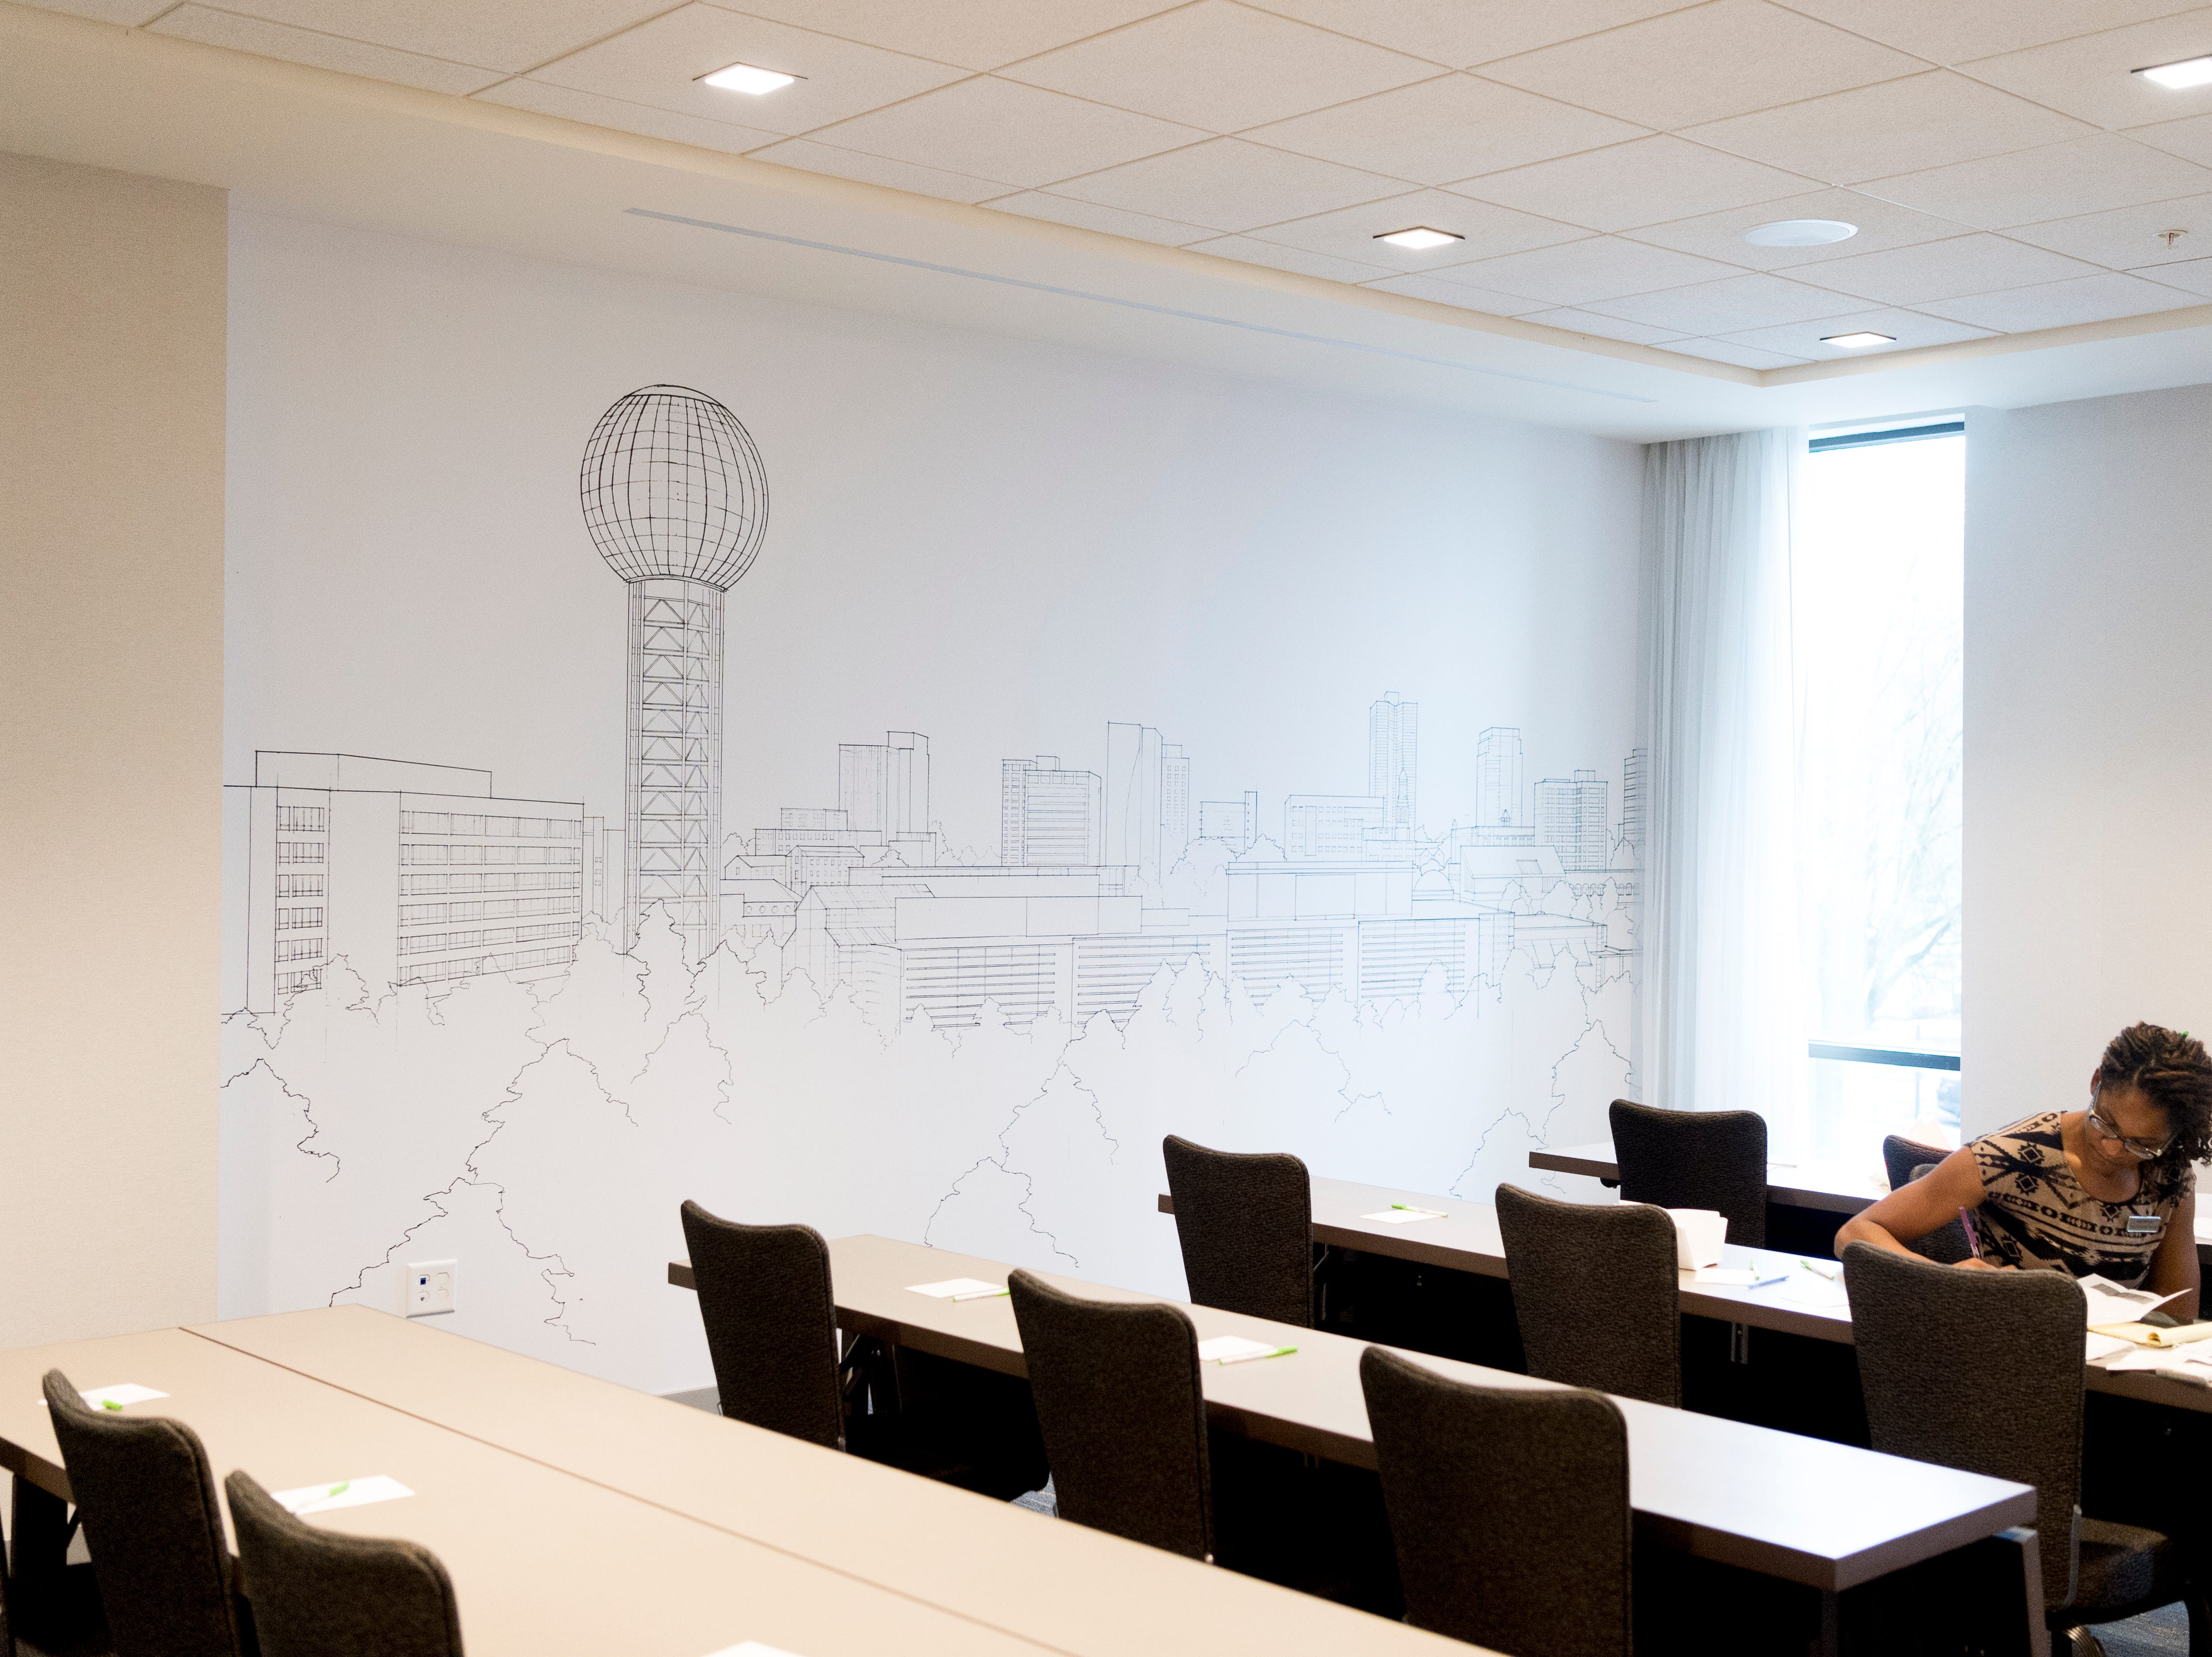 A meeting room features a sketching of the Sunsphere and the Knoxville skyline inside the new Courtyard and Residence Inn by Marriott at 210 Church Ave. in Knoxville, Tennessee on Monday, March 25, 2019. The hotel is the first of its kind in Knoxville to offer two different tiers of hospitality within the same building.